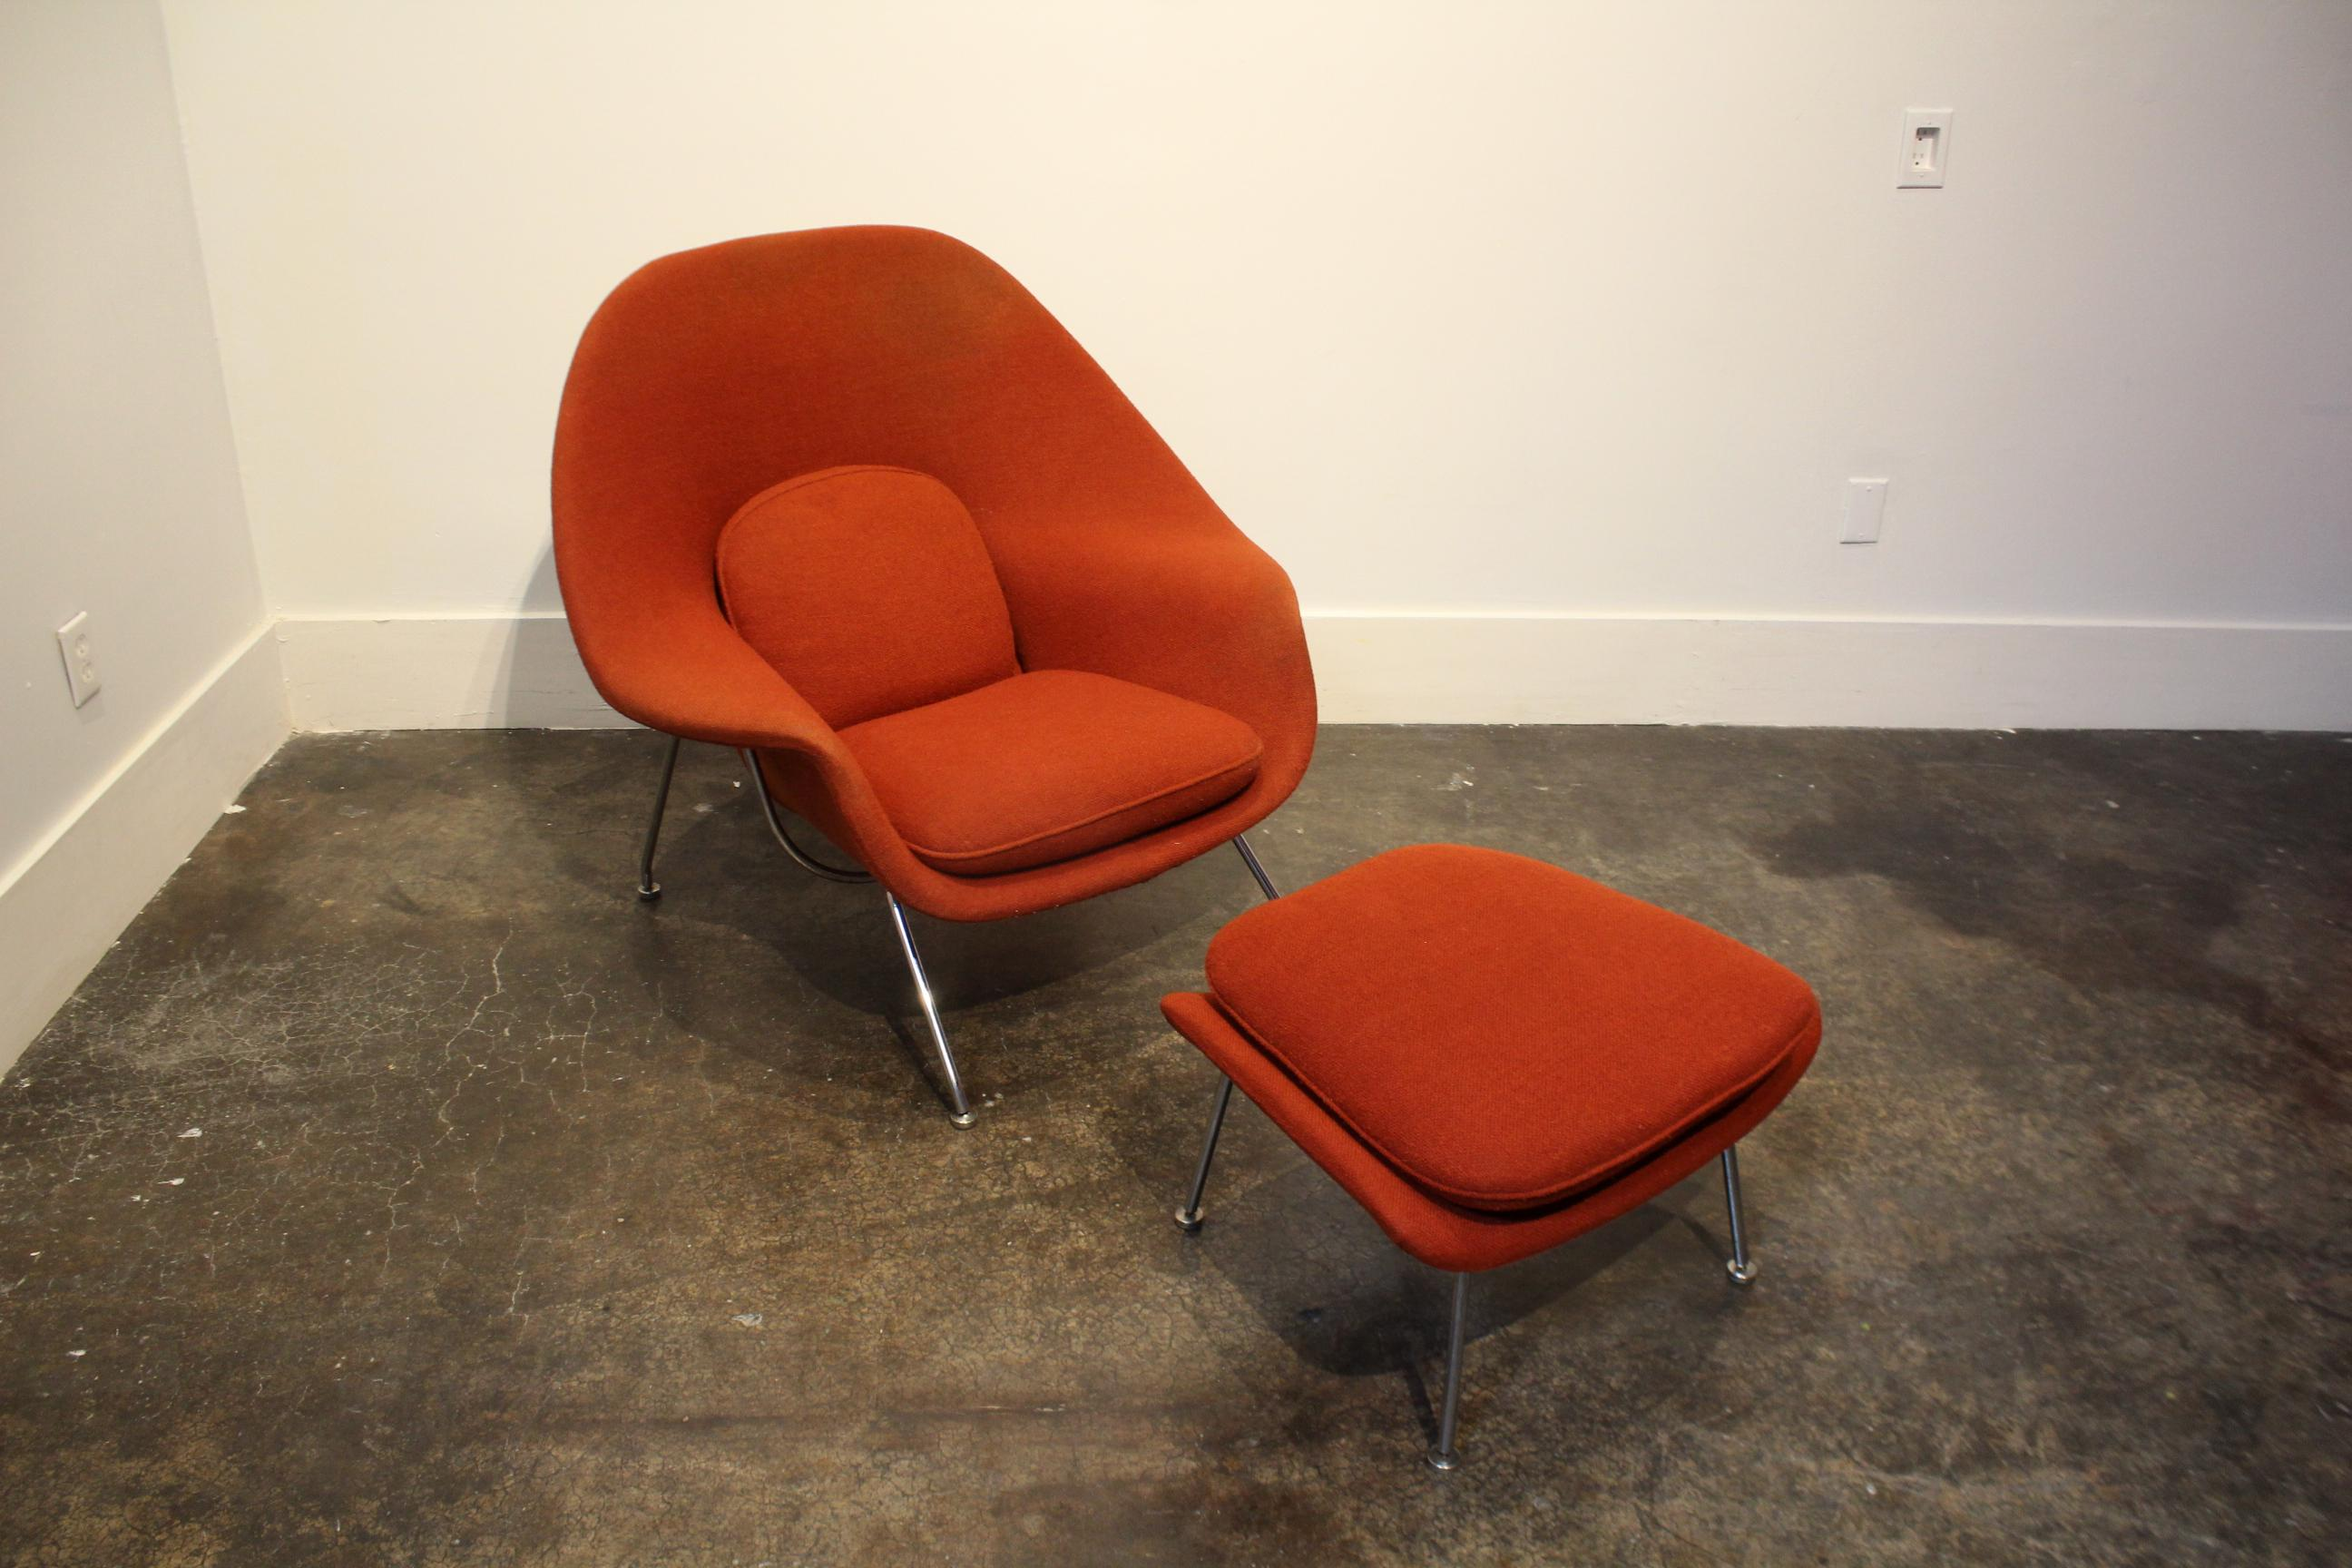 Vintage Knoll Eero Saarinen Womb Chair And Ottoman. Labels Date It To The  1960u0027s.